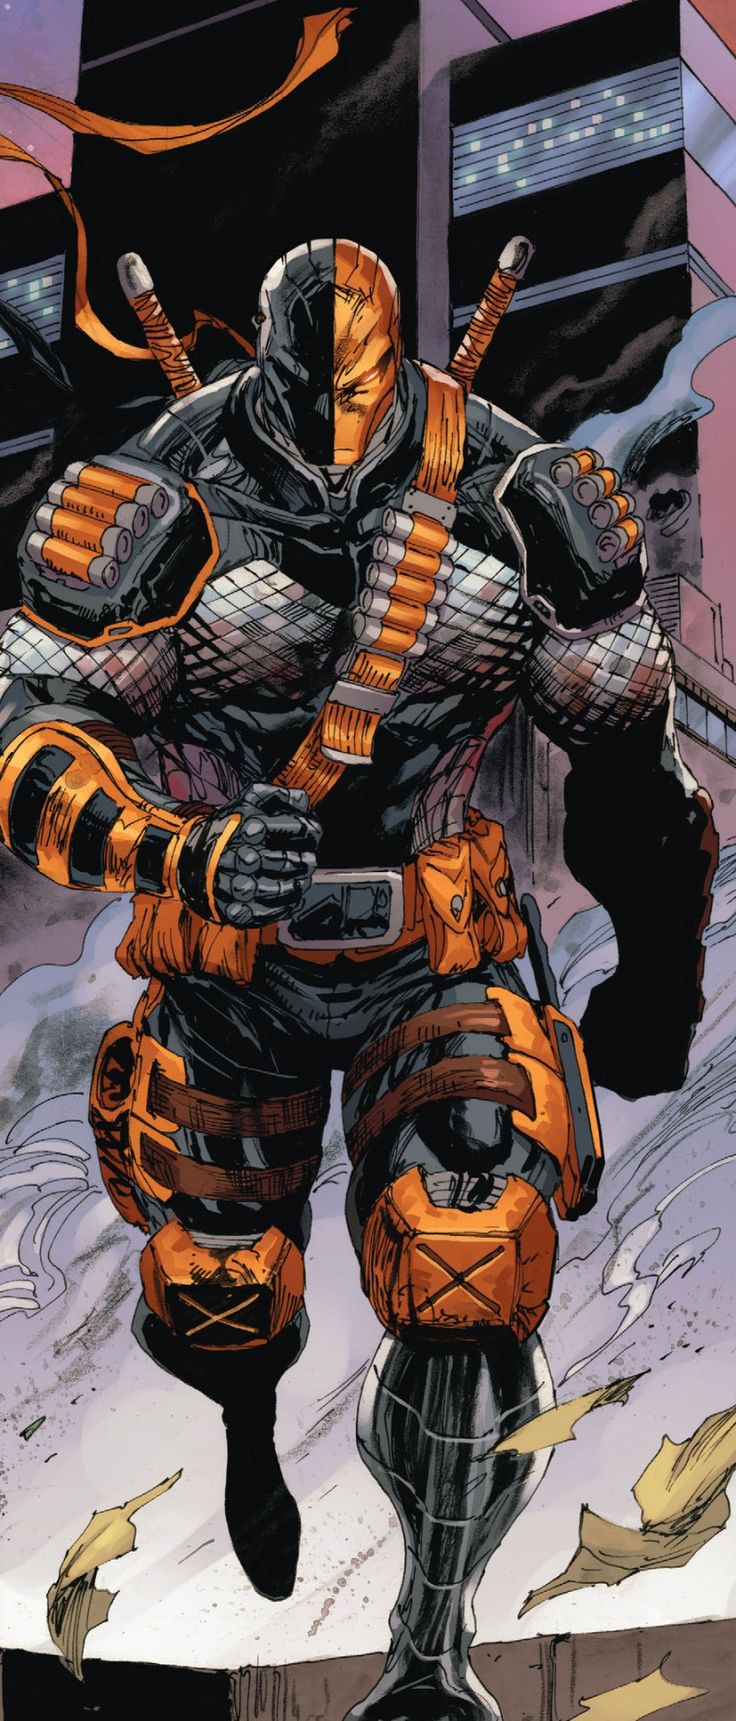 Deathstroke #15 2016. - Living life one comic book at a time.